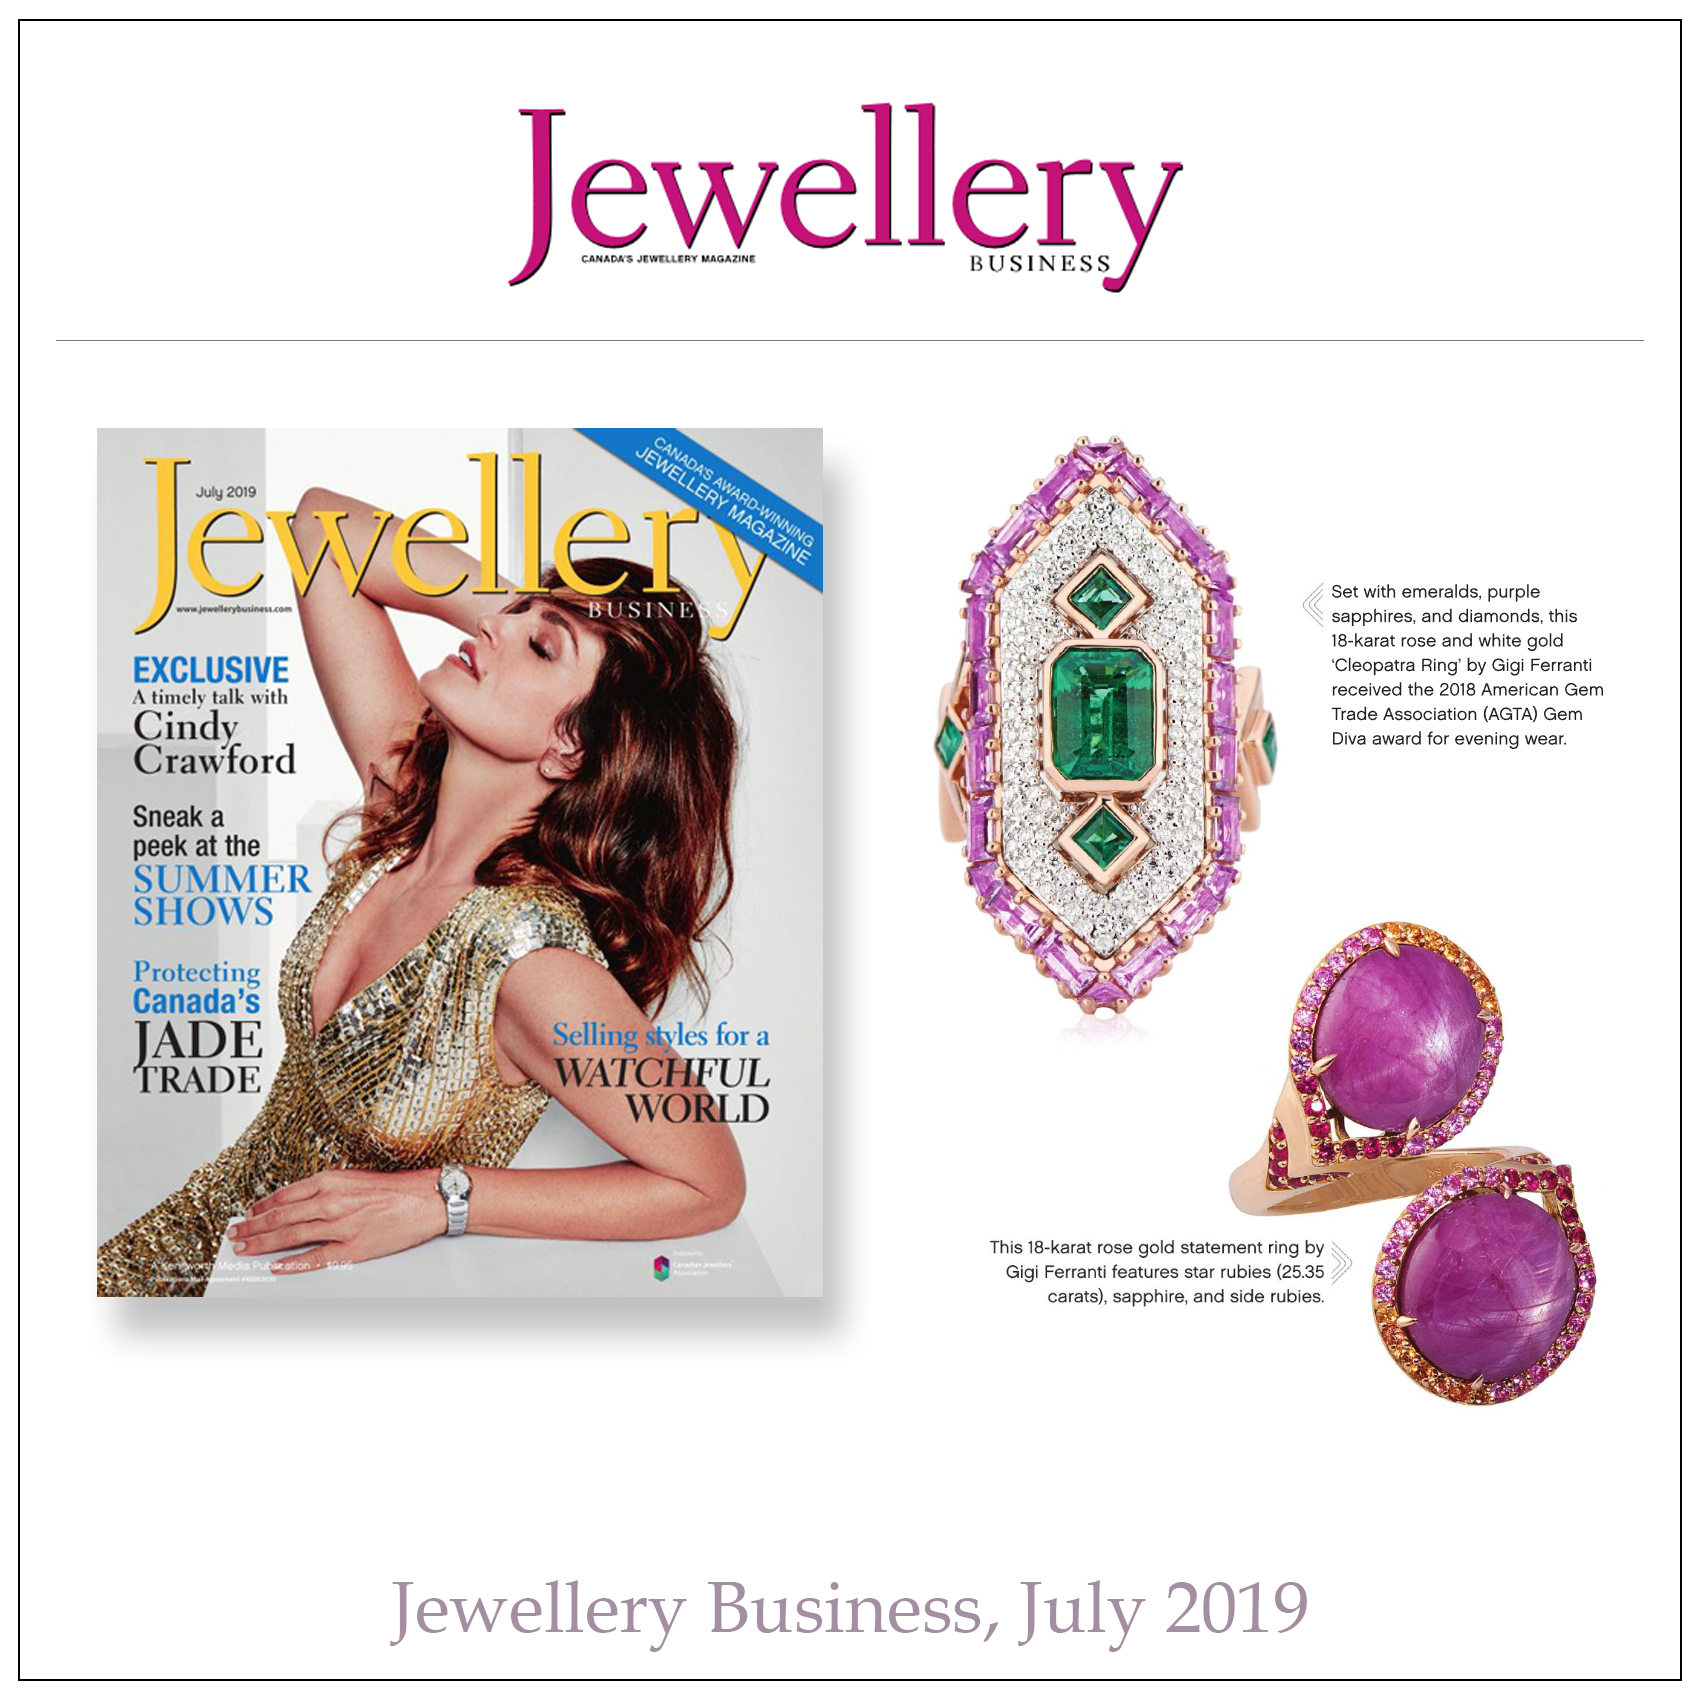 jewellery-businessmagazine-july-2019.png